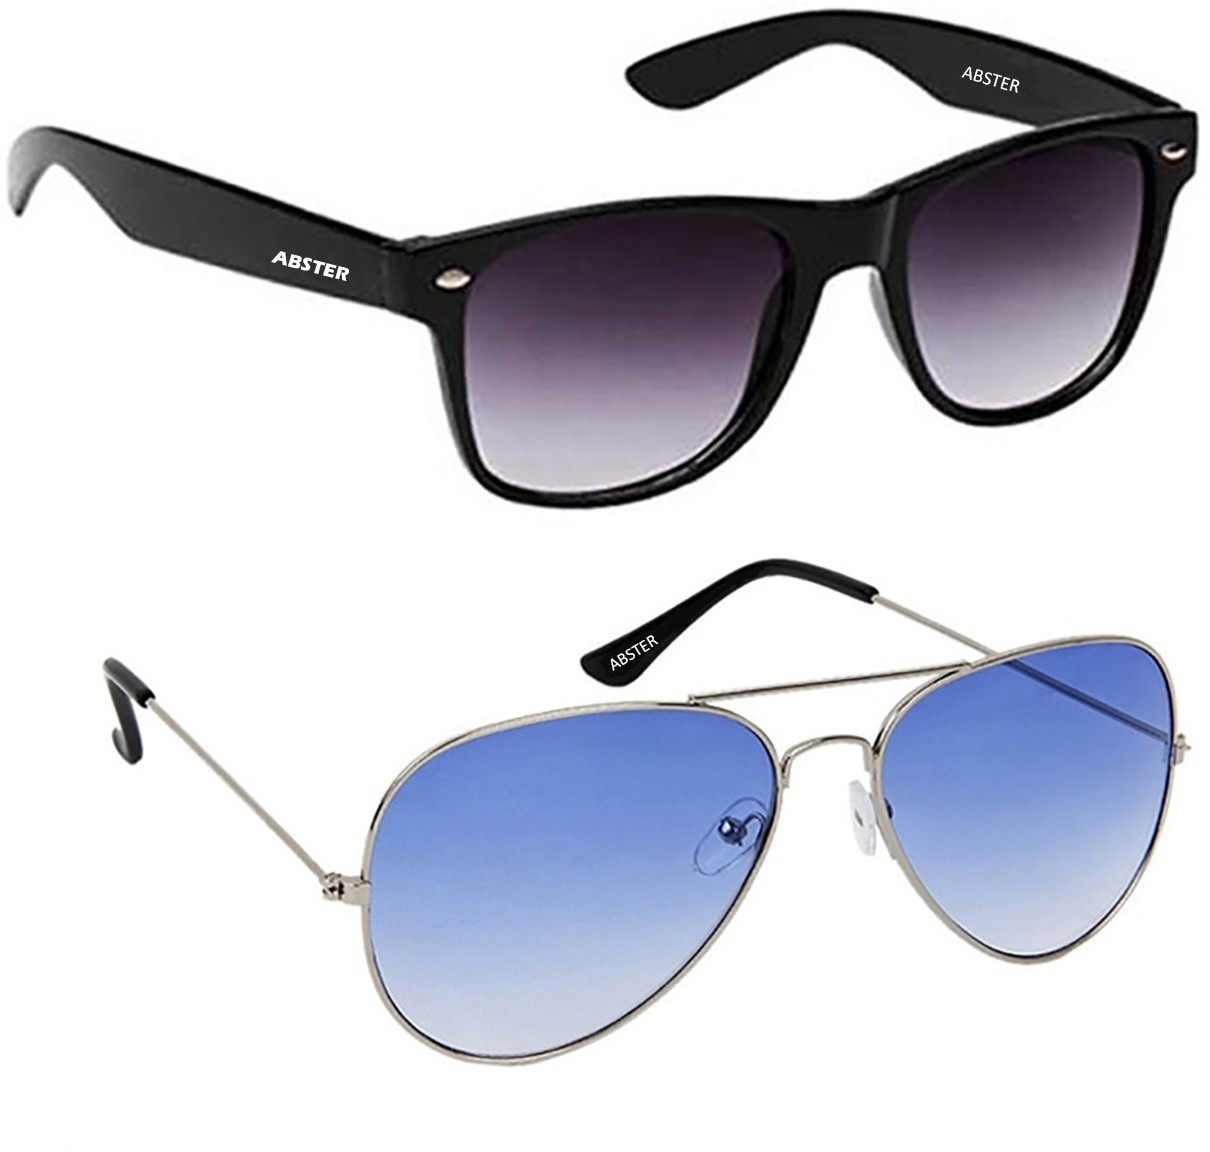 Deals - Delhi - Under Rs. 699 <br> Sunglasses<br> Category - sunglasses<br> Business - Flipkart.com